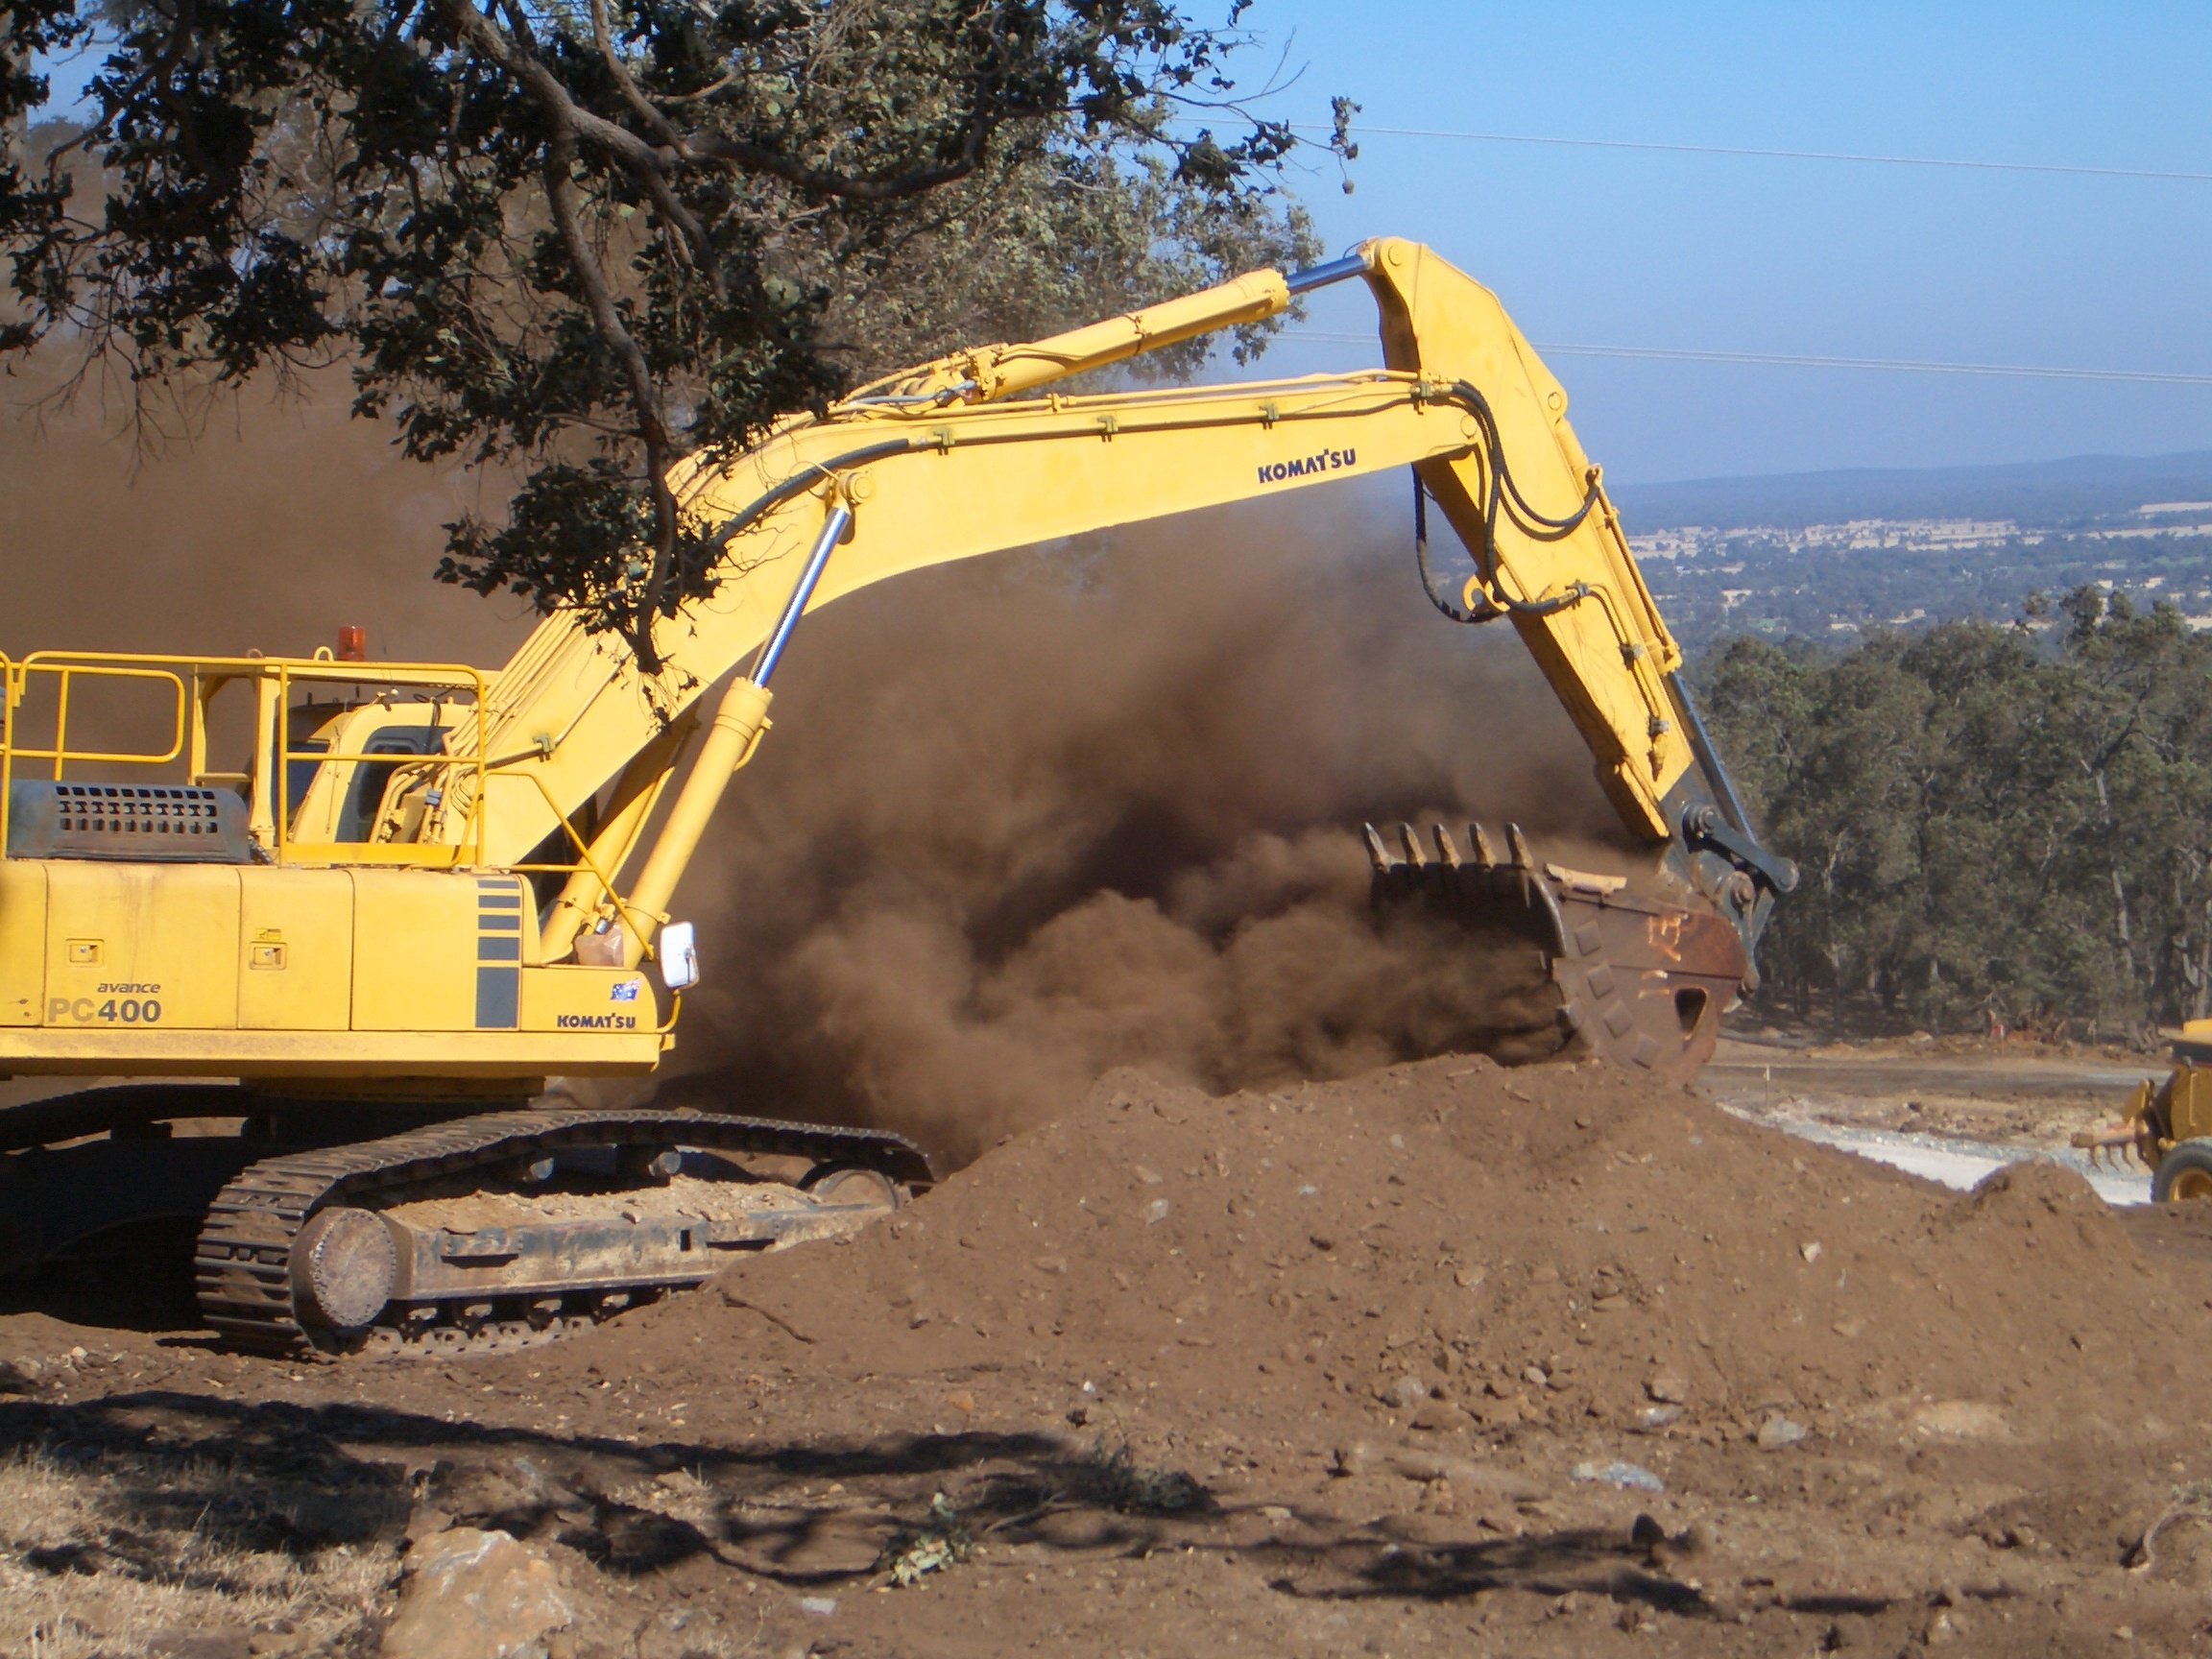 geotechnical engineering consultants using Digger Machinery digging in earth on site.